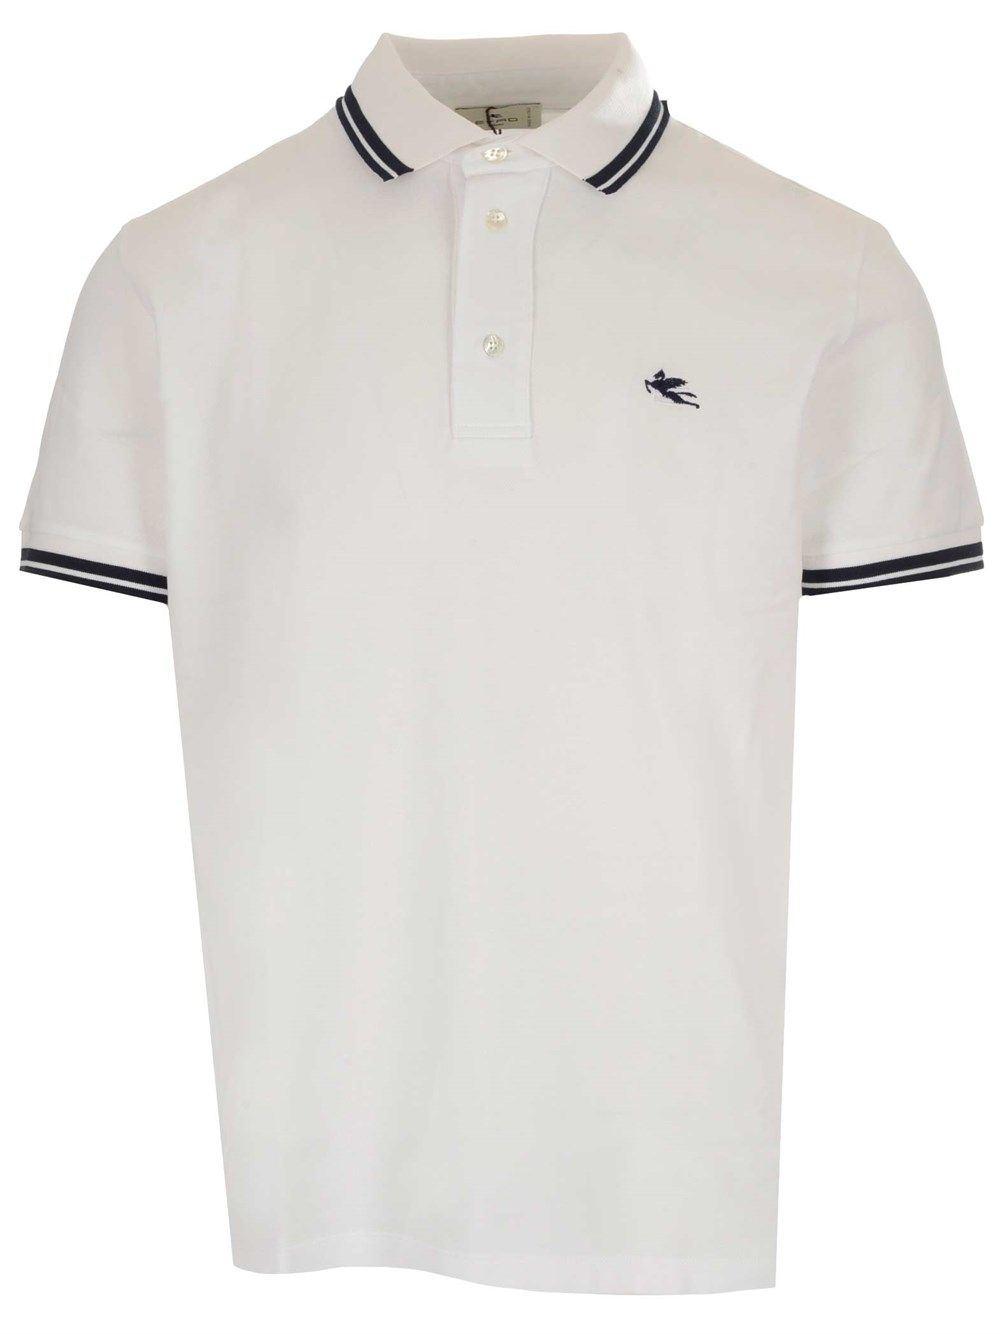 Etro Cottons ETRO MEN'S 1Y8009982991 WHITE OTHER MATERIALS POLO SHIRT